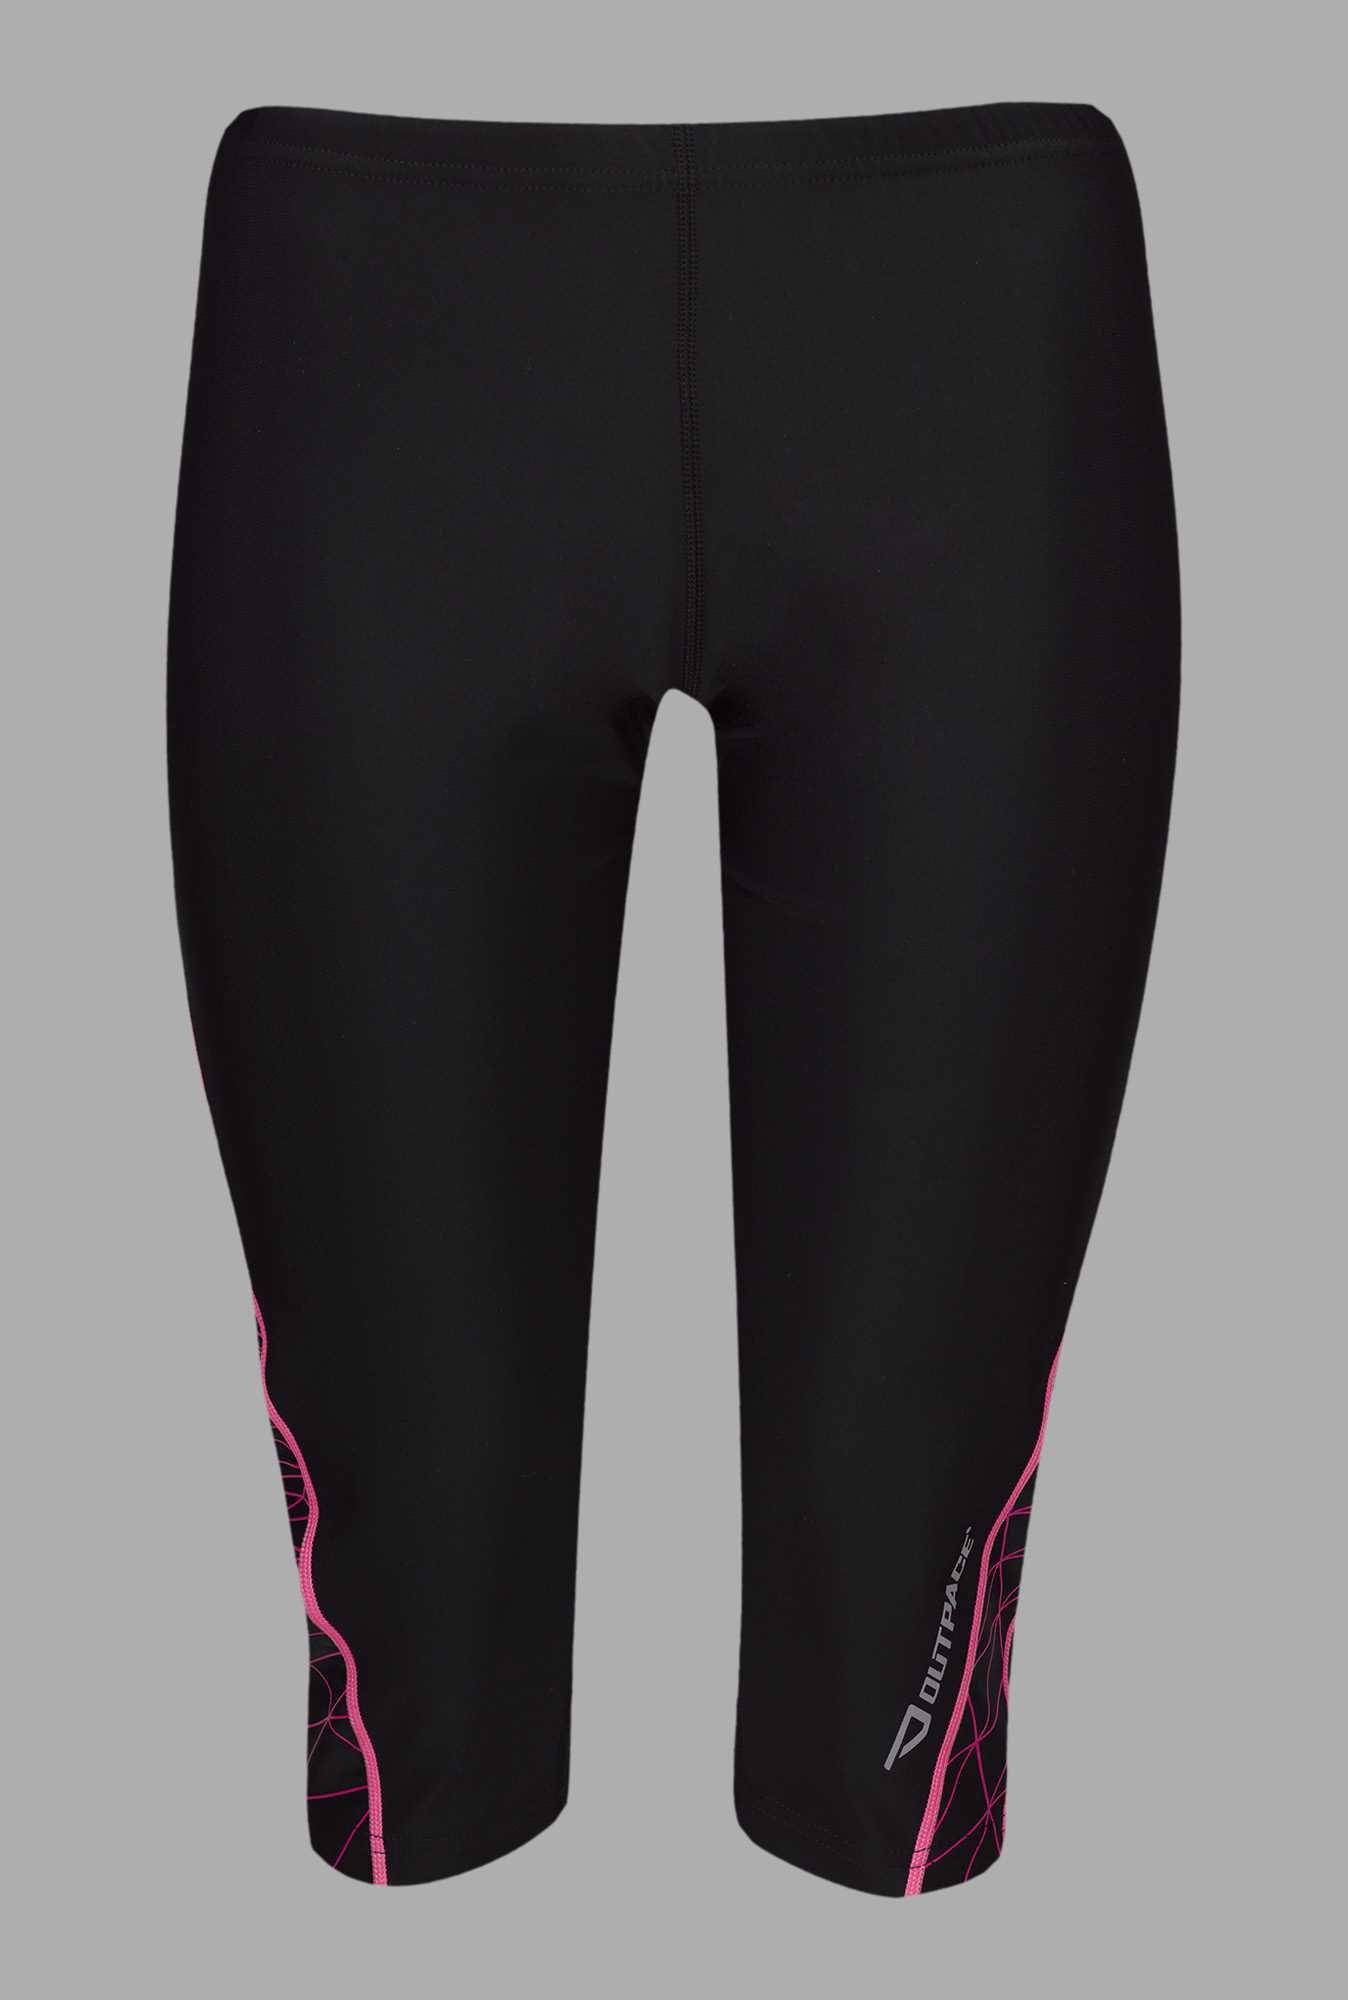 Outpace Black Solid Running Capri